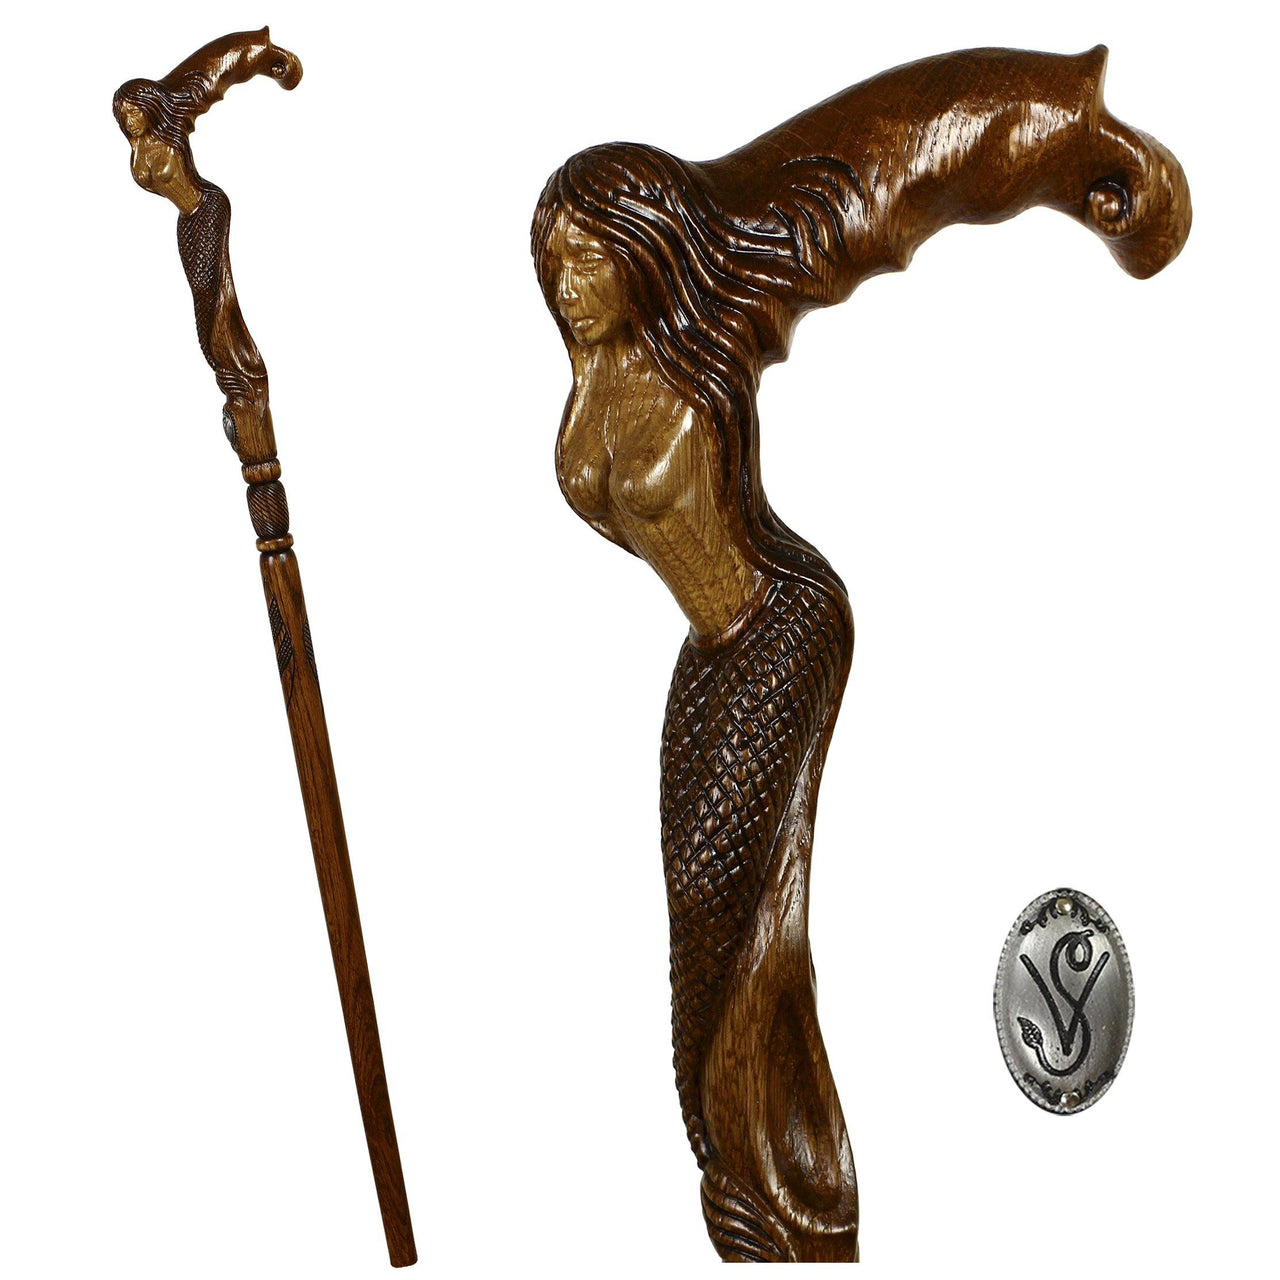 Crying Mermaid Syren Girl Wooden Walking Stick Cane